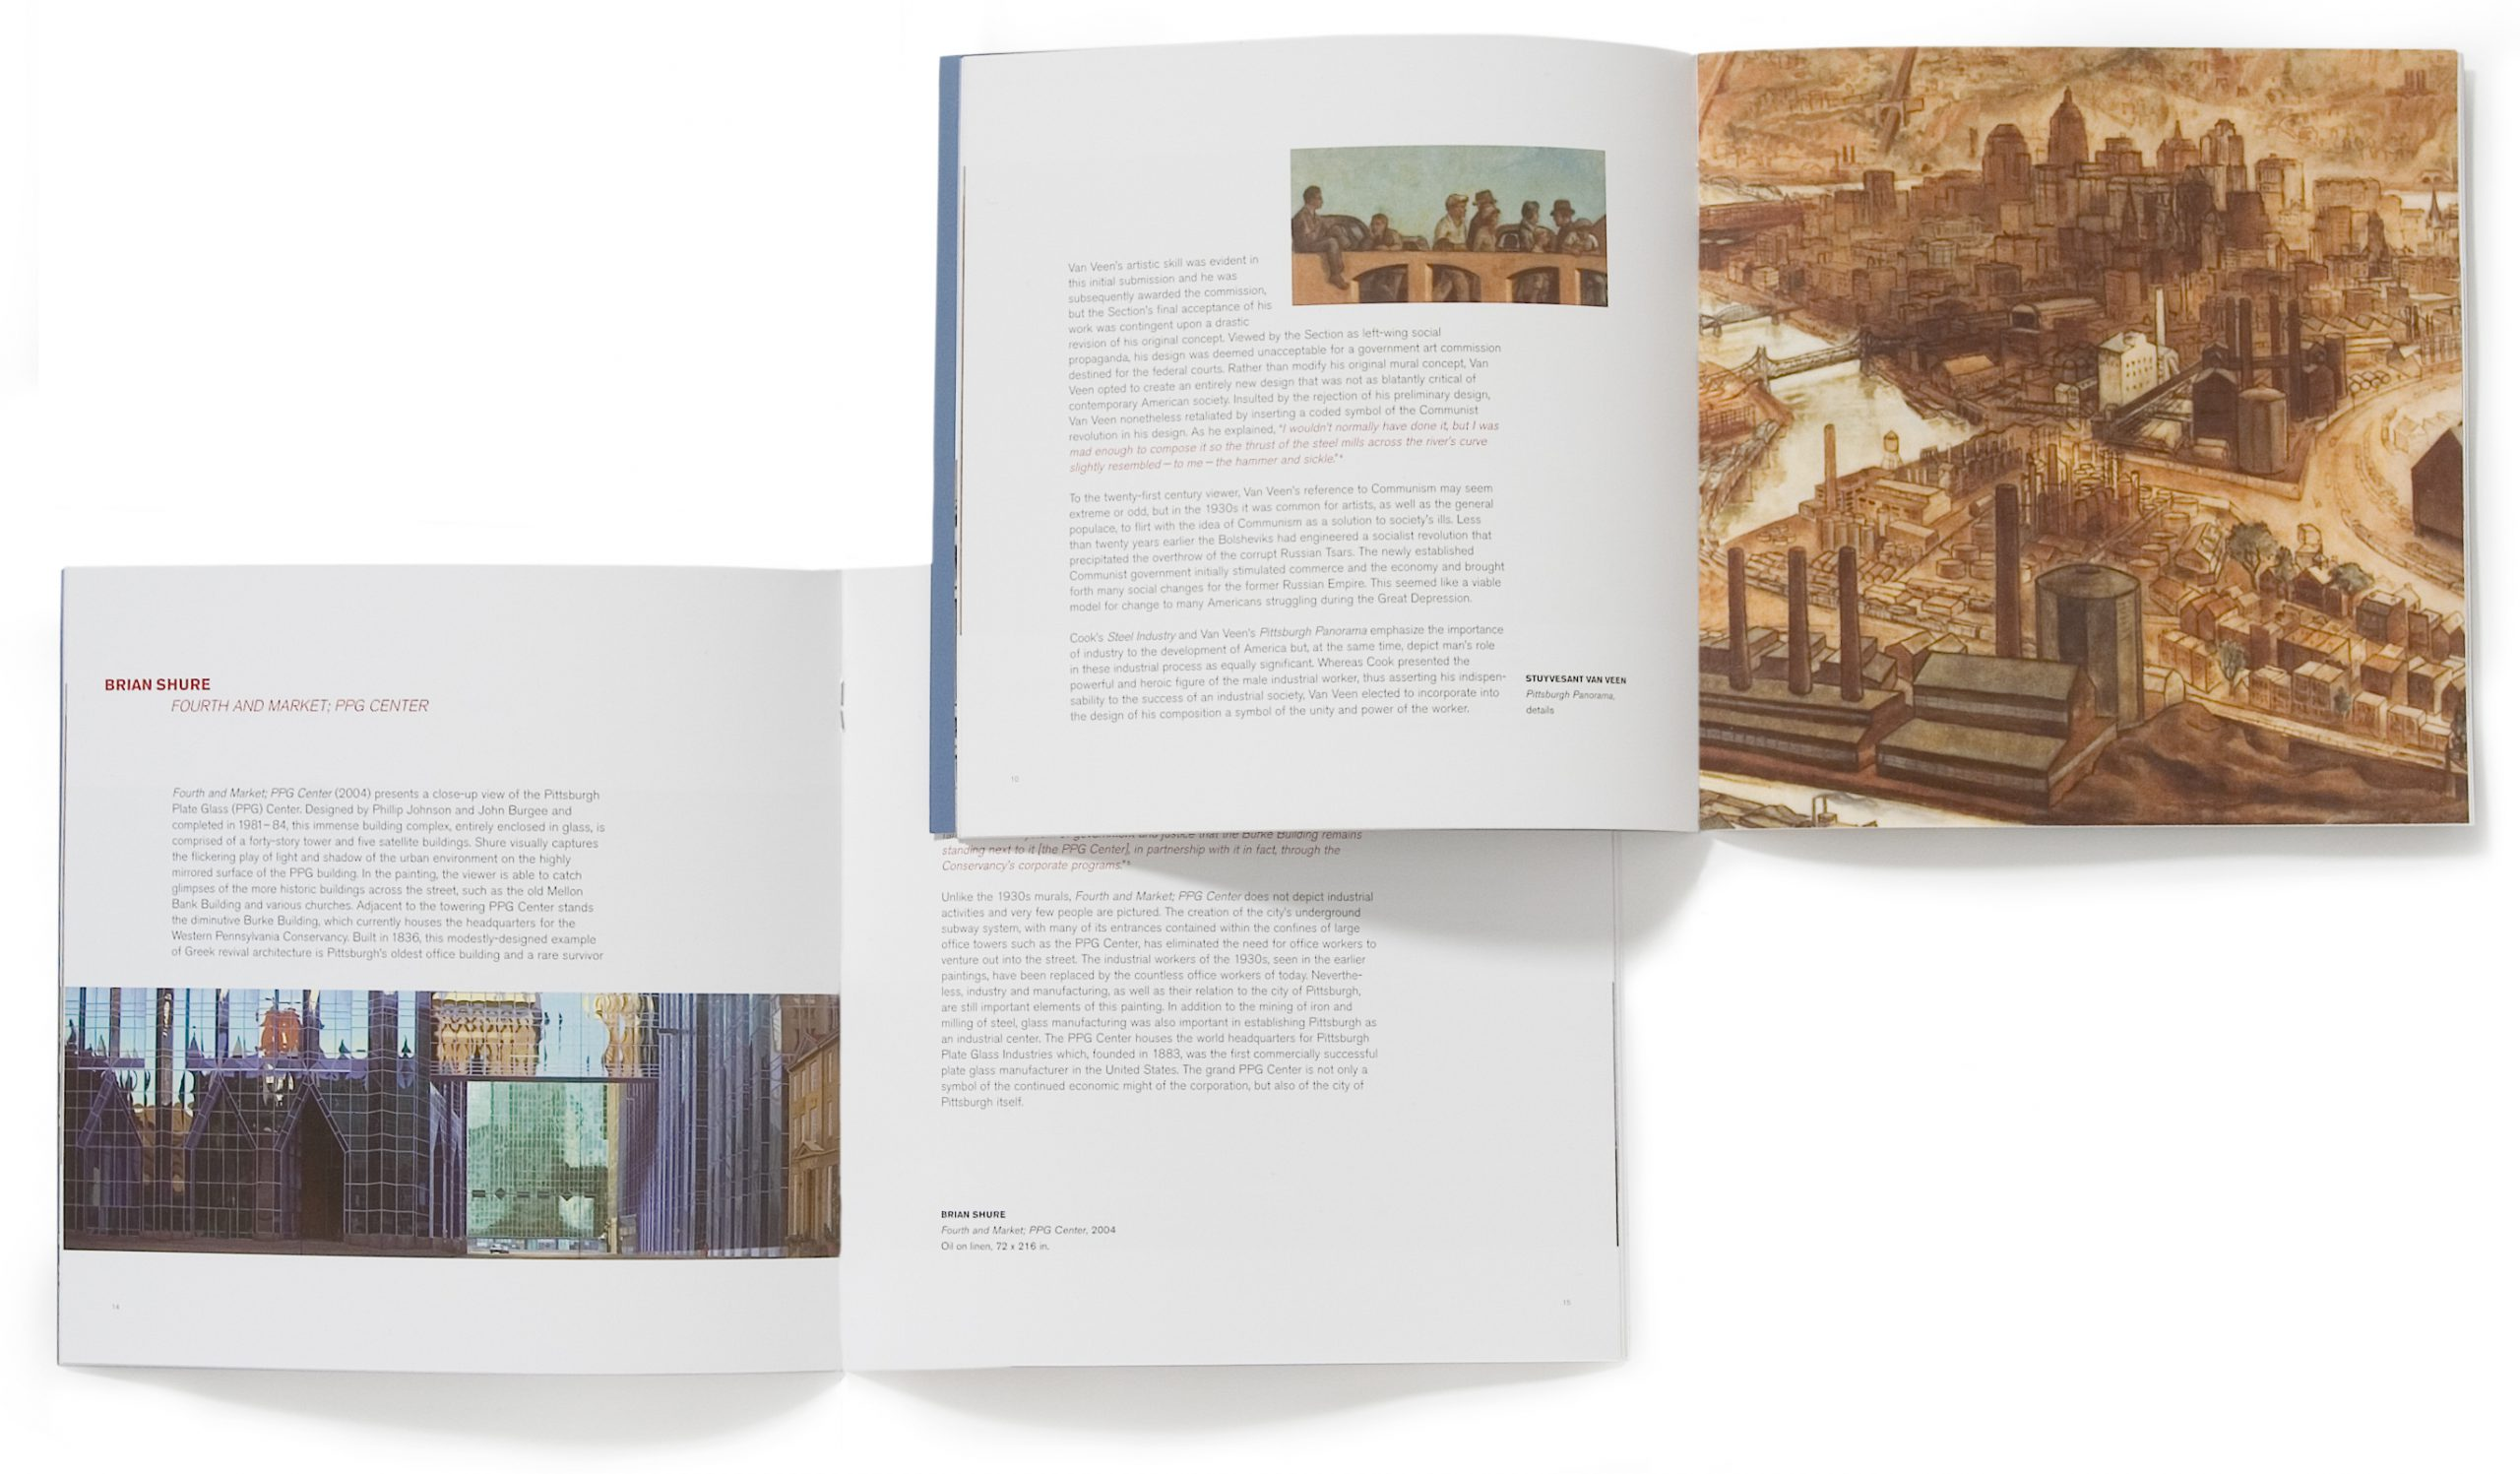 """Project image 2 for """"A Dialogue with the City"""" Publication, General Services Administration"""